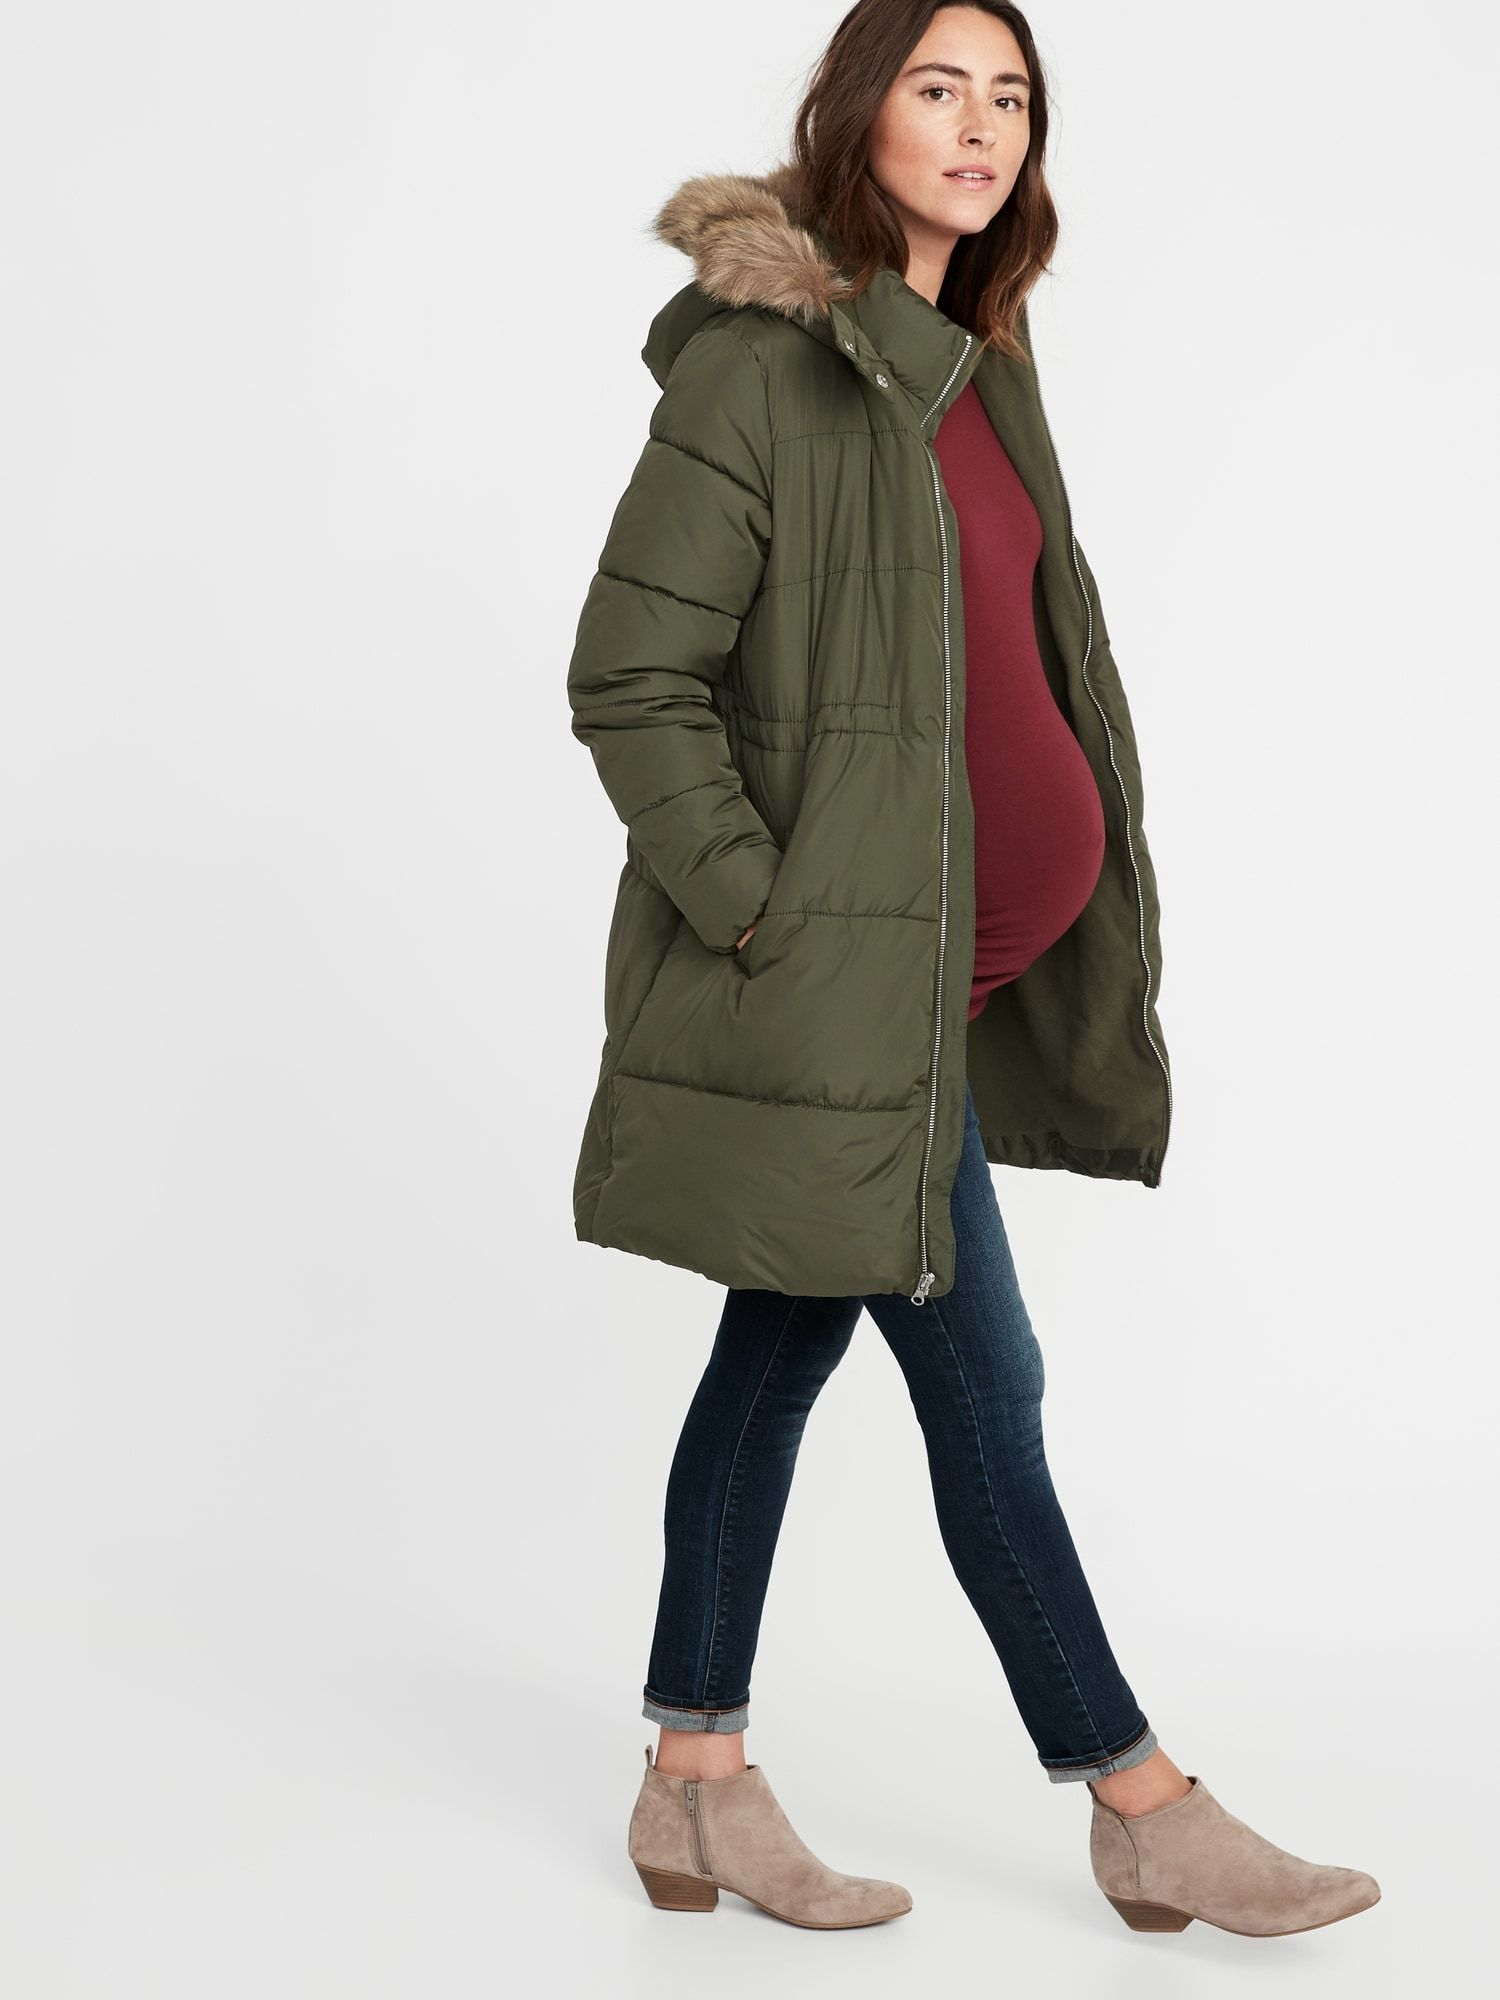 d9d520f9c908c product Old Navy Maternity, Puffer Jackets, Winter Jackets, Fur Trim, Military  Jacket